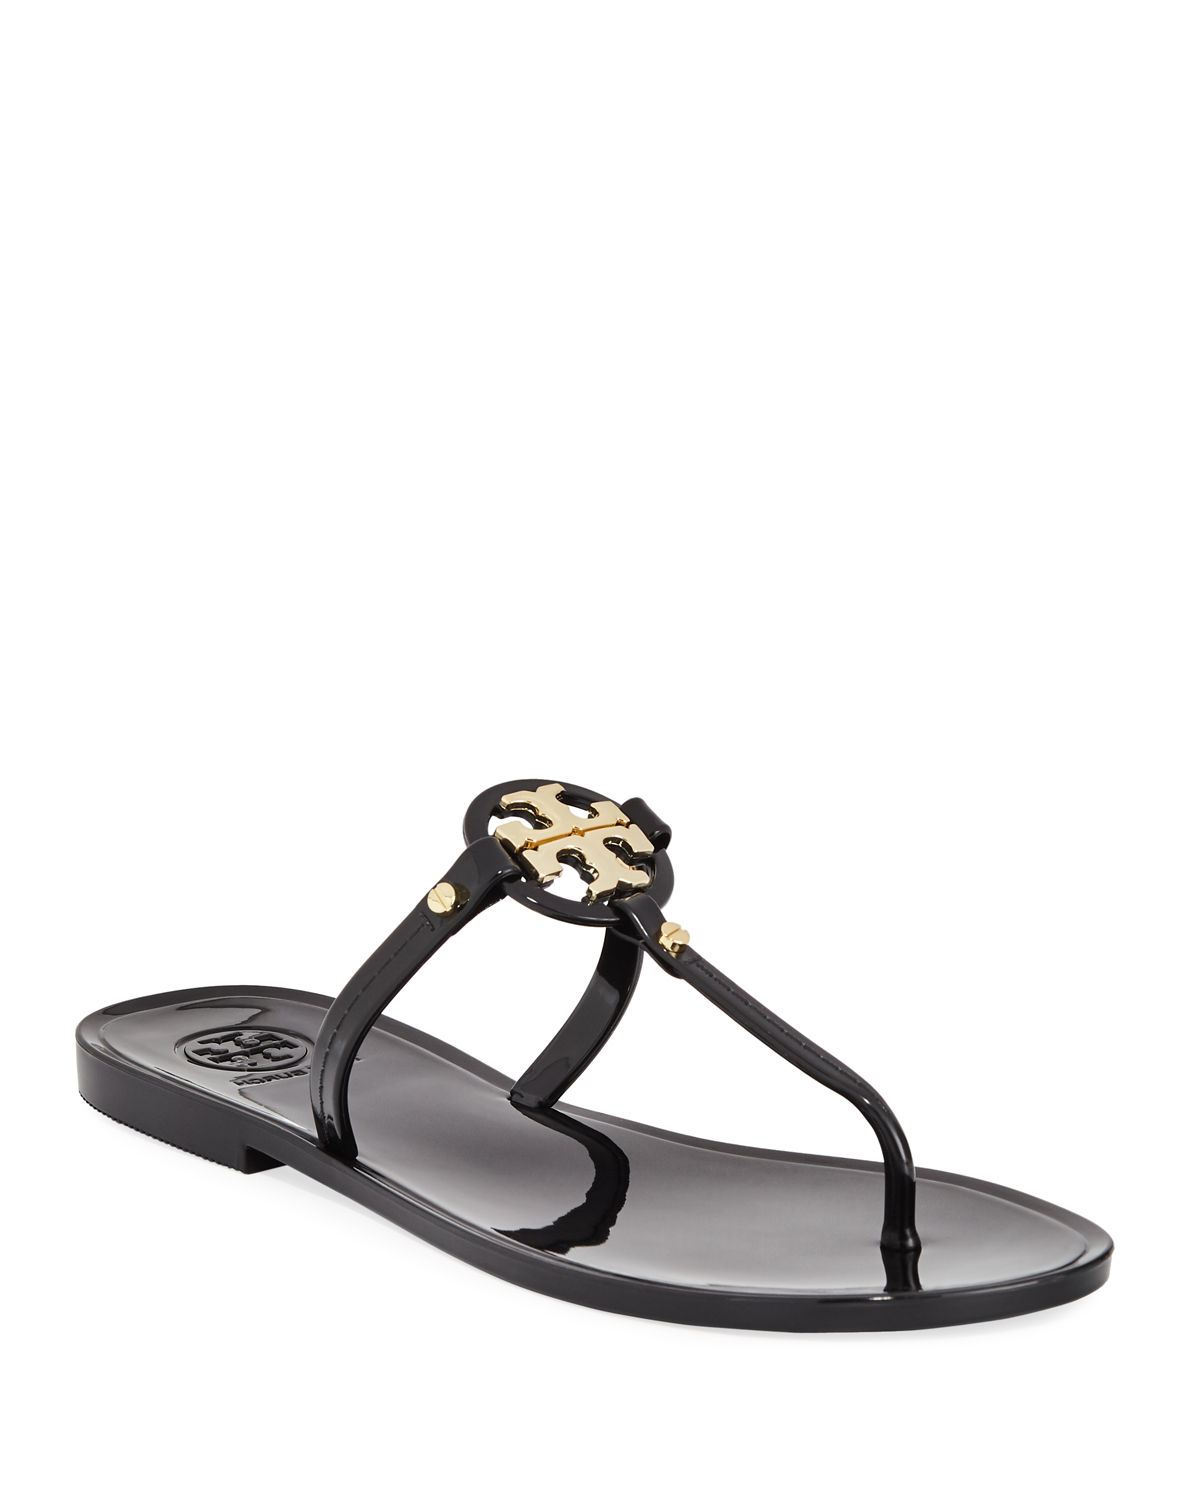 560e07d0b Tory Burch Mini Miller Flat Jelly Thong Sandals